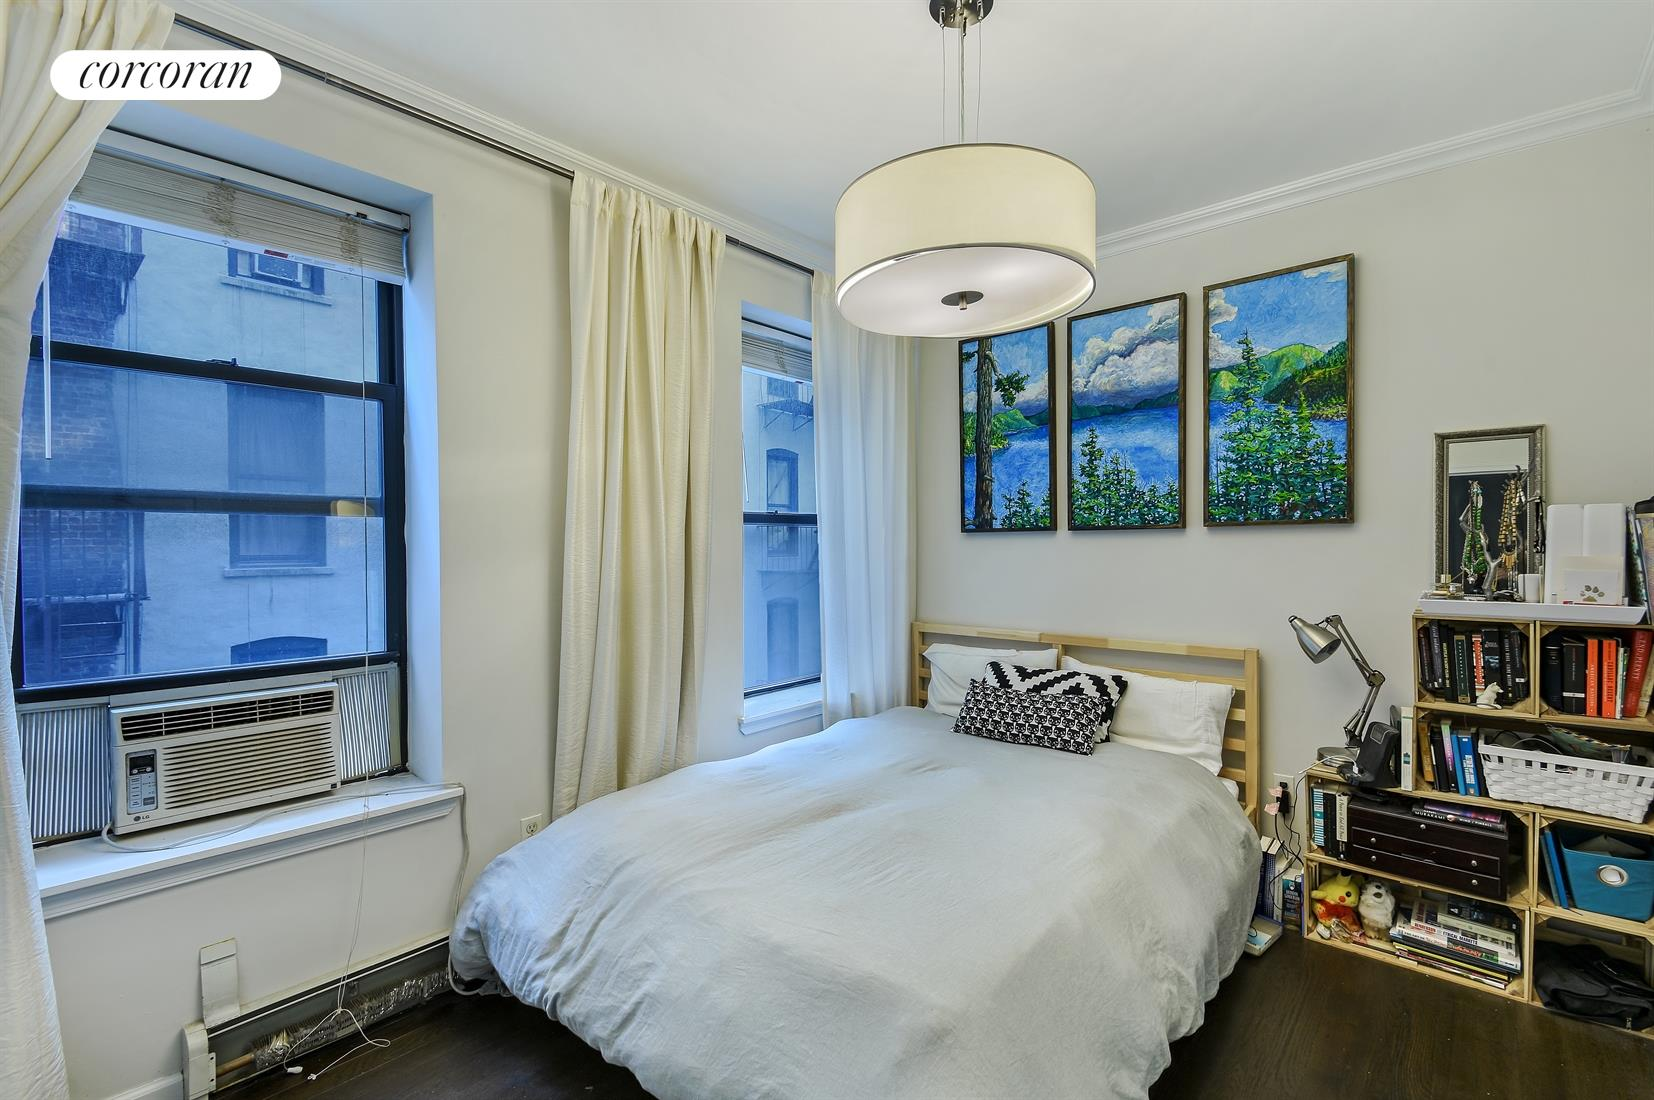 Corcoran, 220 West 111th Street, Apt. 2C, Harlem Real Estate ...